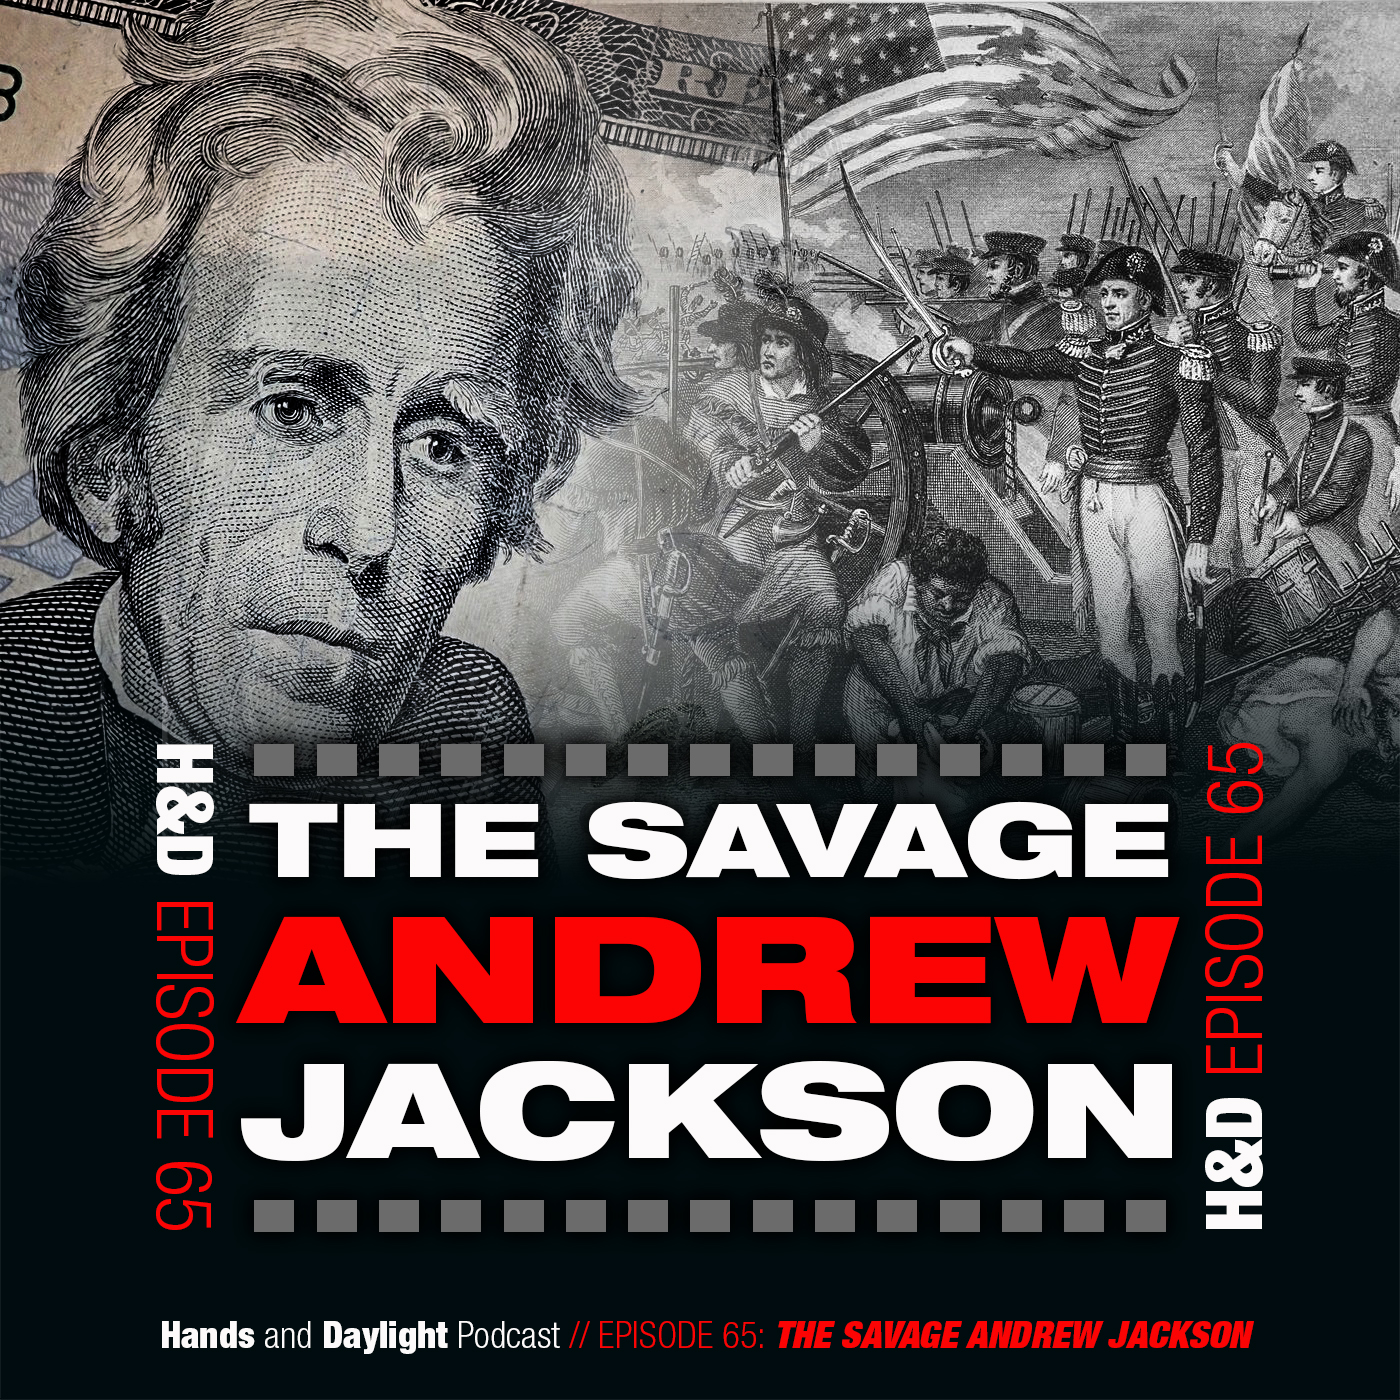 E65: THE SAVAGERY OF ANDREW JACKSON